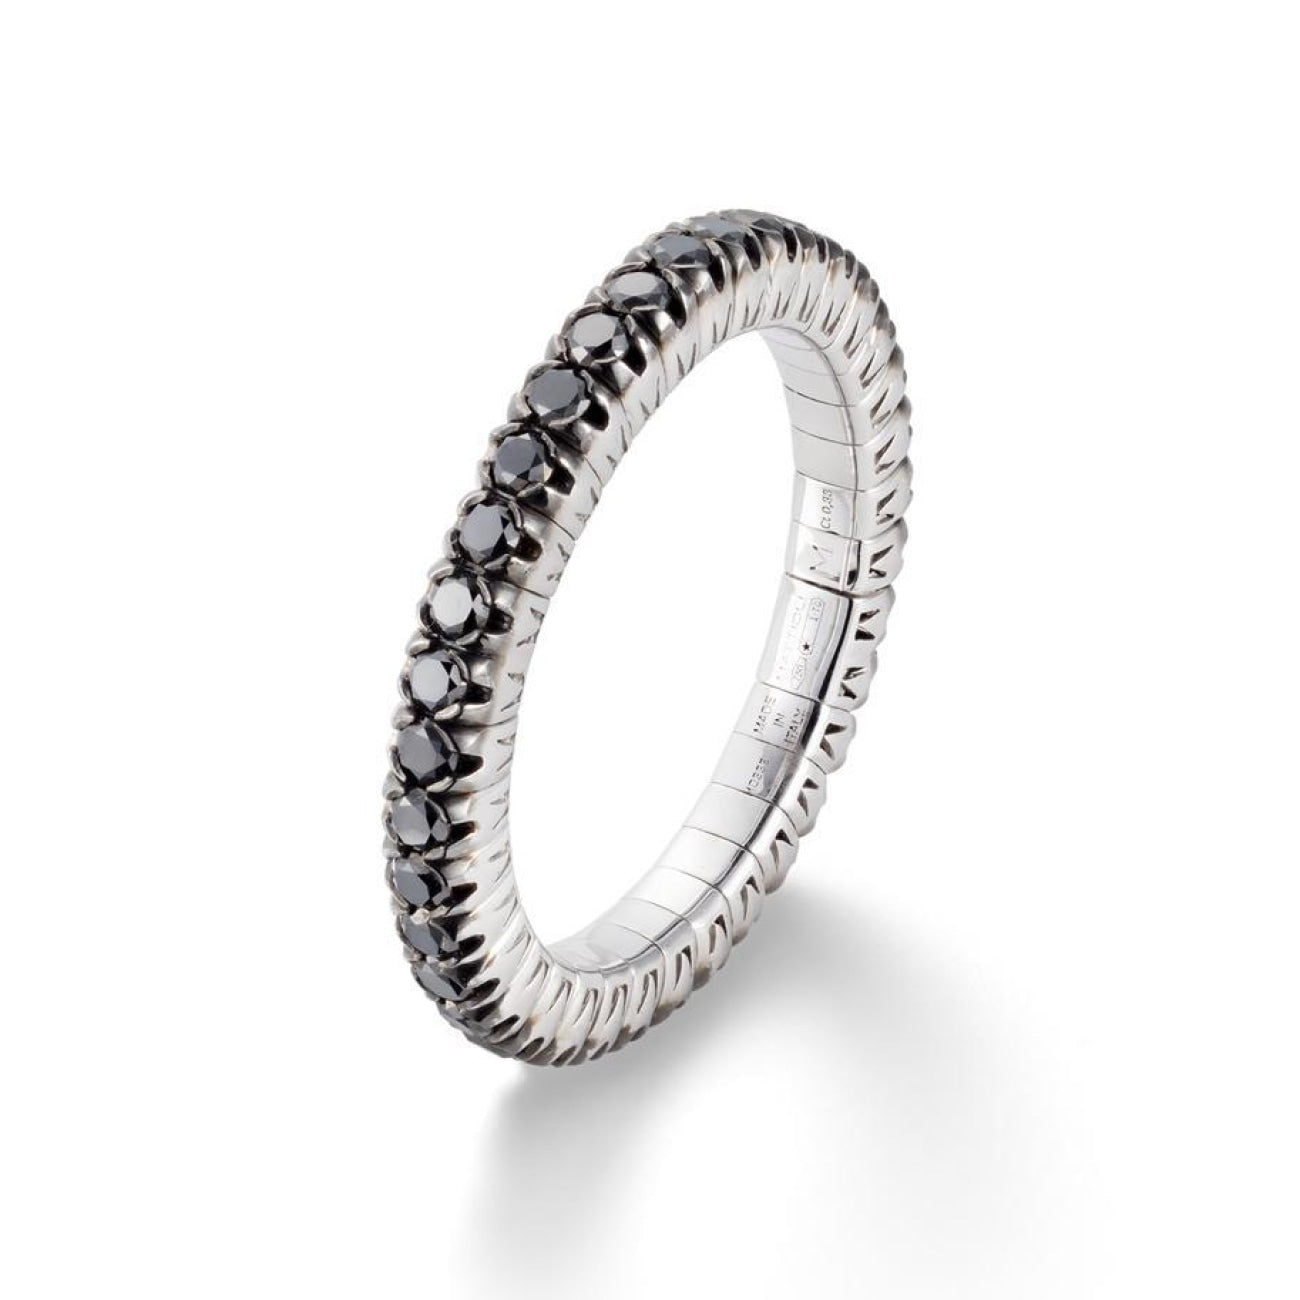 Mattioli Jewelry - Xband Expandable Ring in 18kt White Gold and Black Diamonds in Large Size | Manfredi Jewels